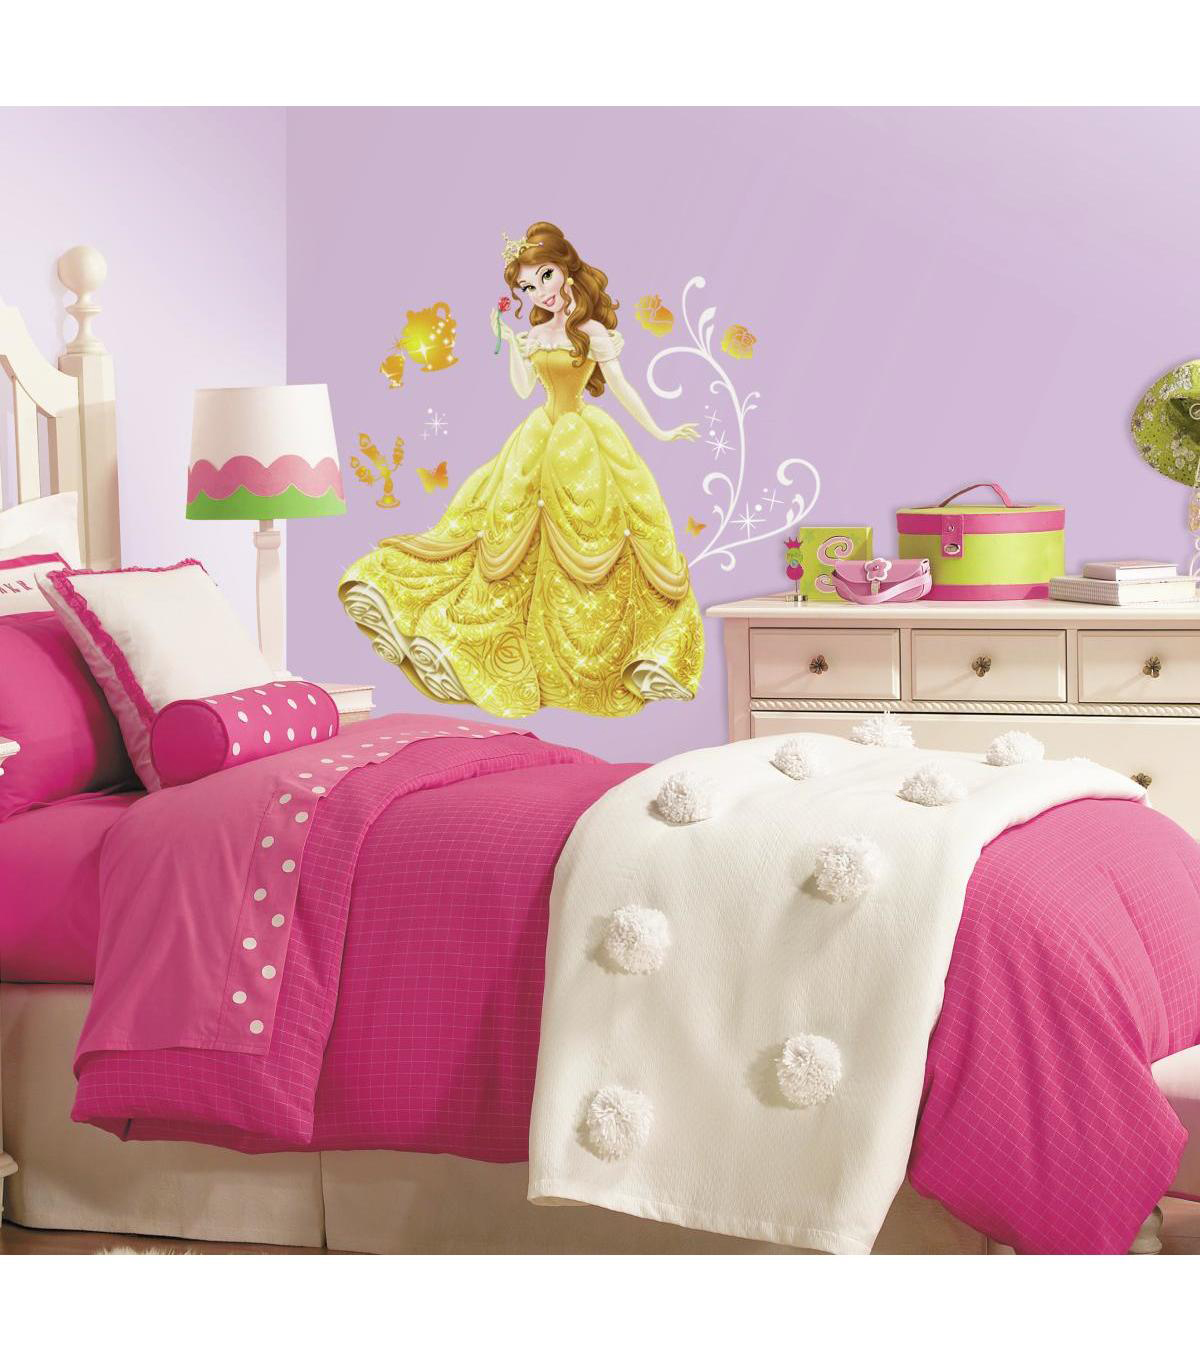 York Wallcoverings Peel & Stick Wall Decals-Disney Princess Belle